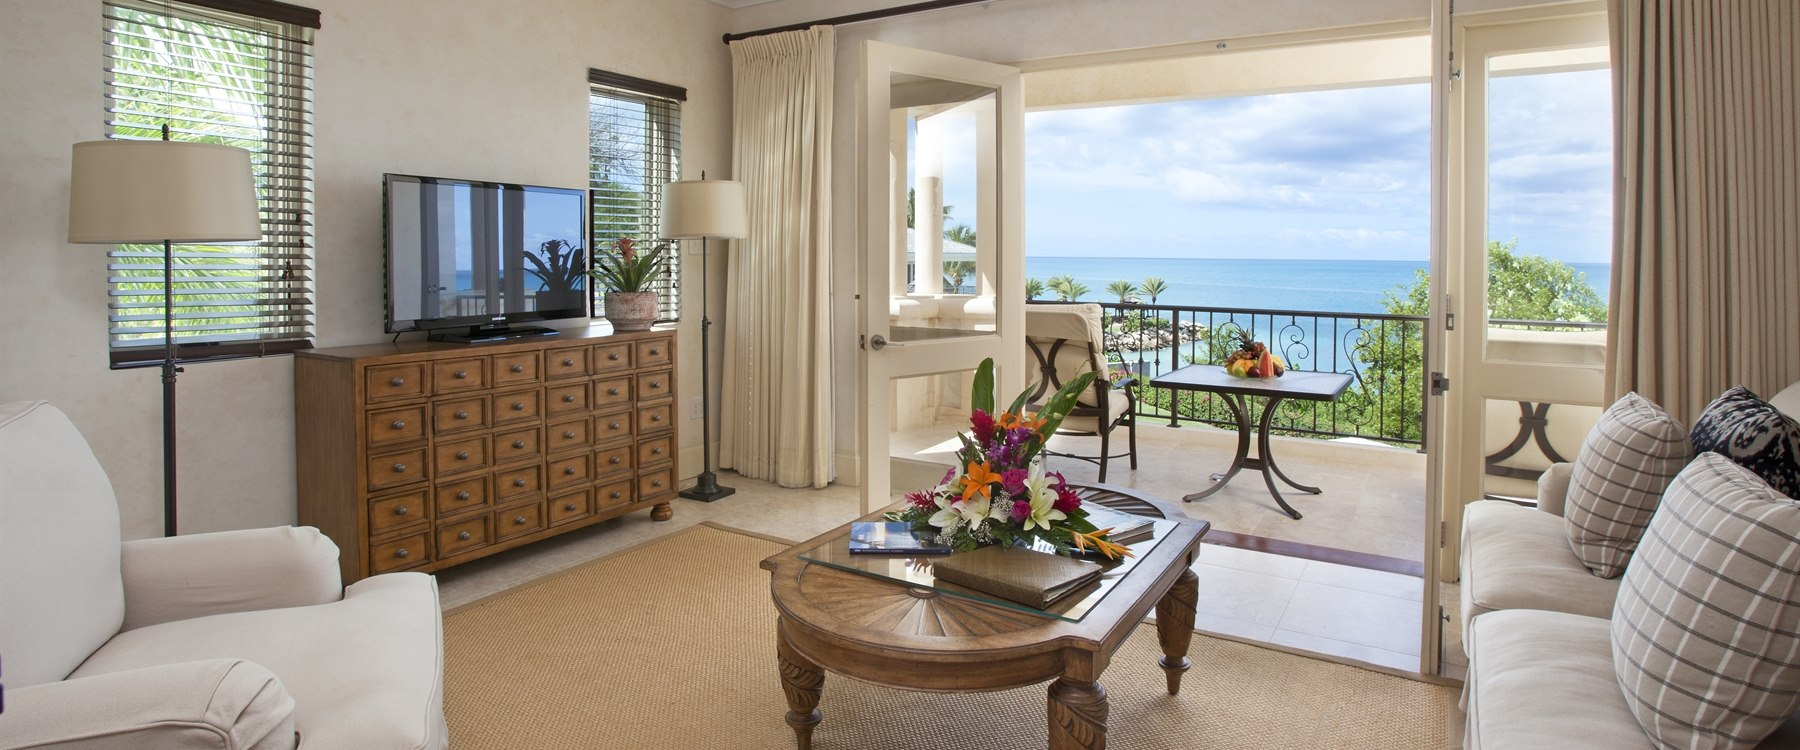 Suite bedroom lounge area within The Cove Suites at Blue Water, Antigua